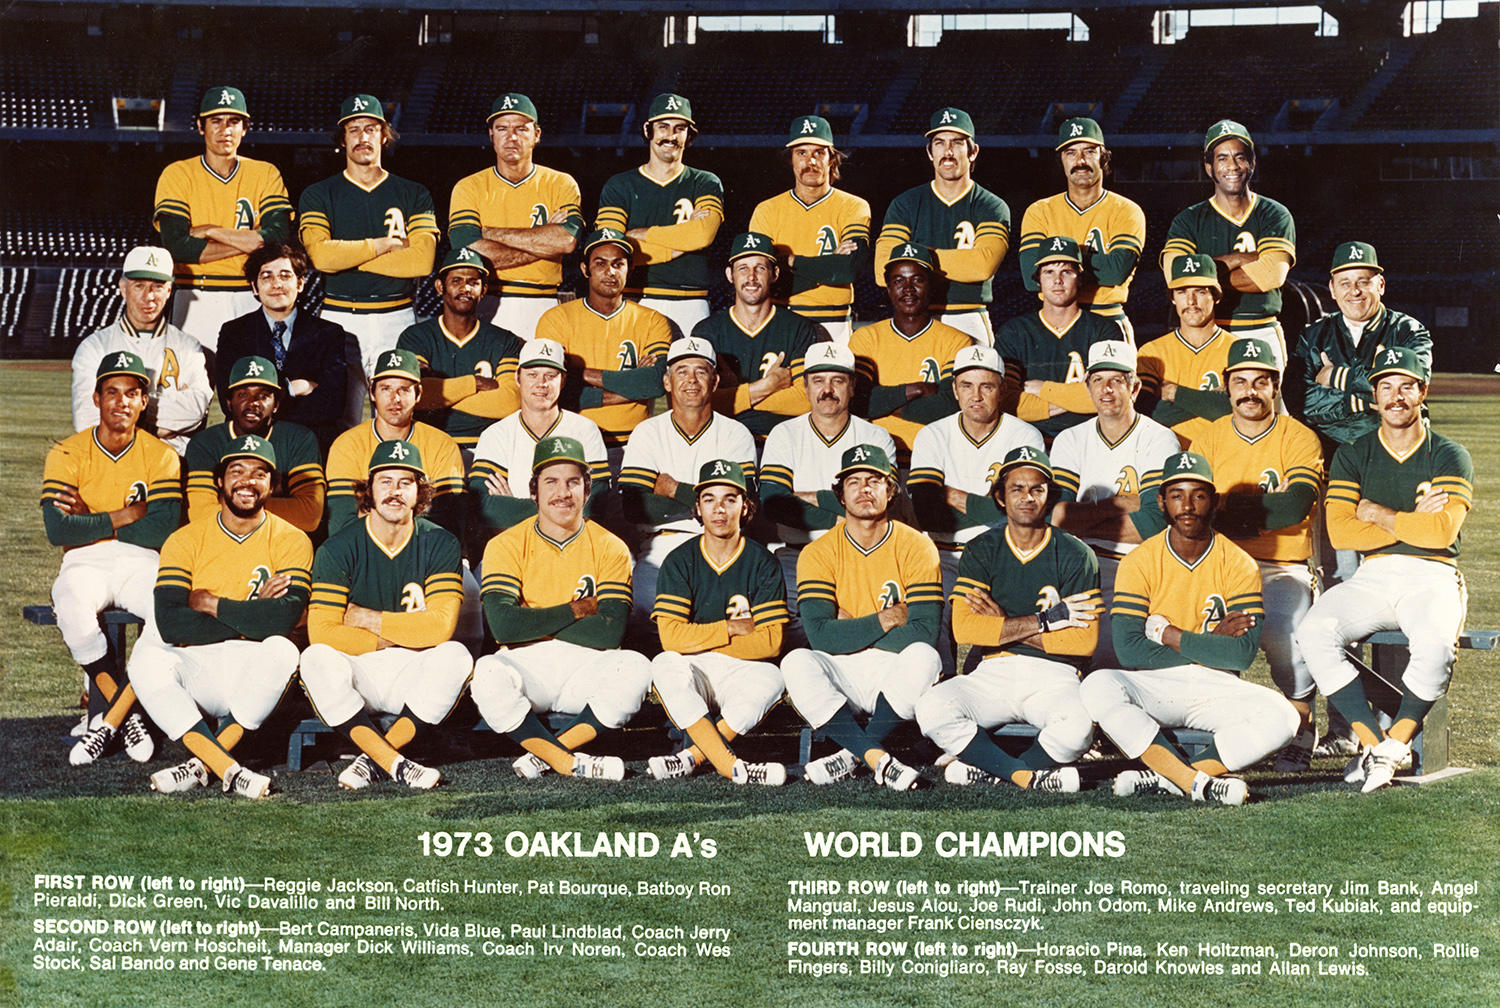 Rollie Fingers' three days with the Red Sox | Baseball Hall